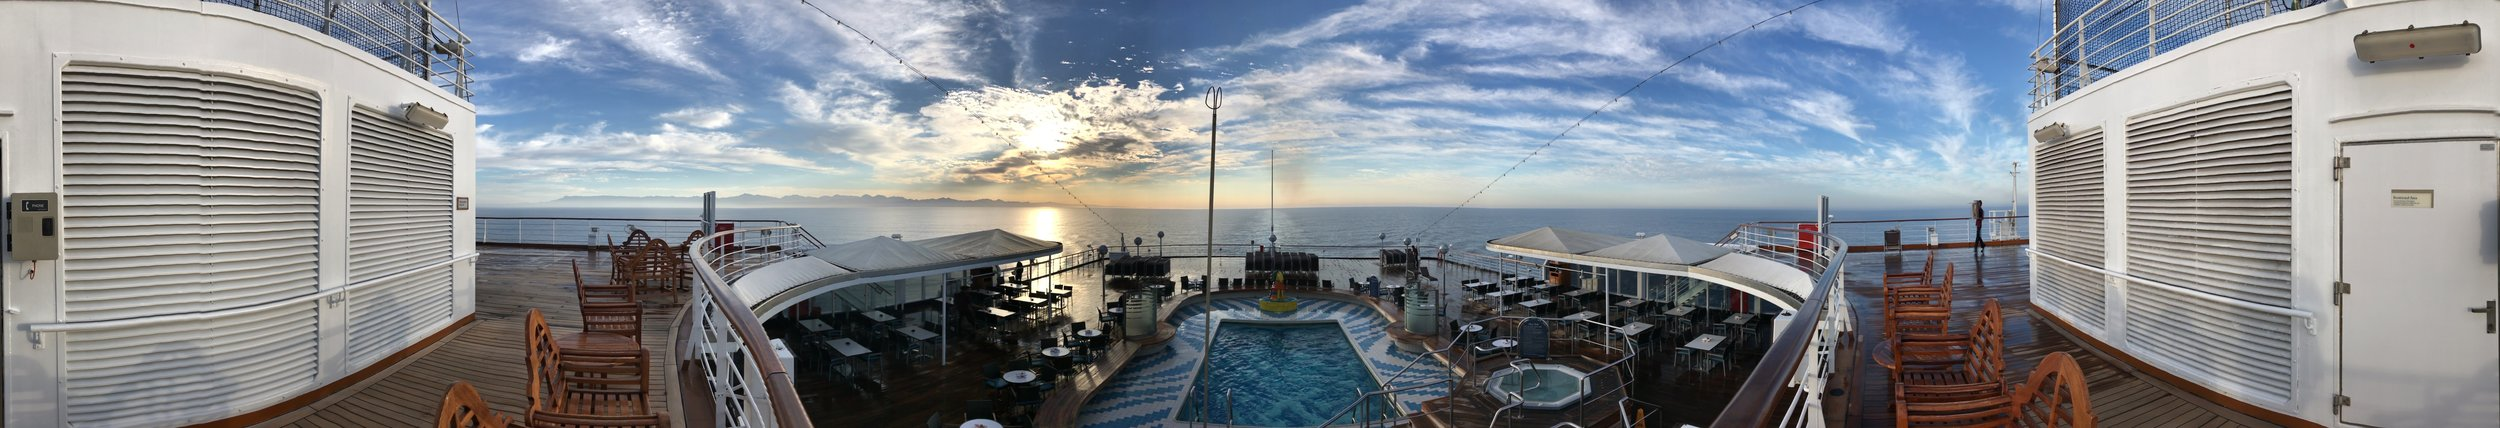 Panorama off the Stern